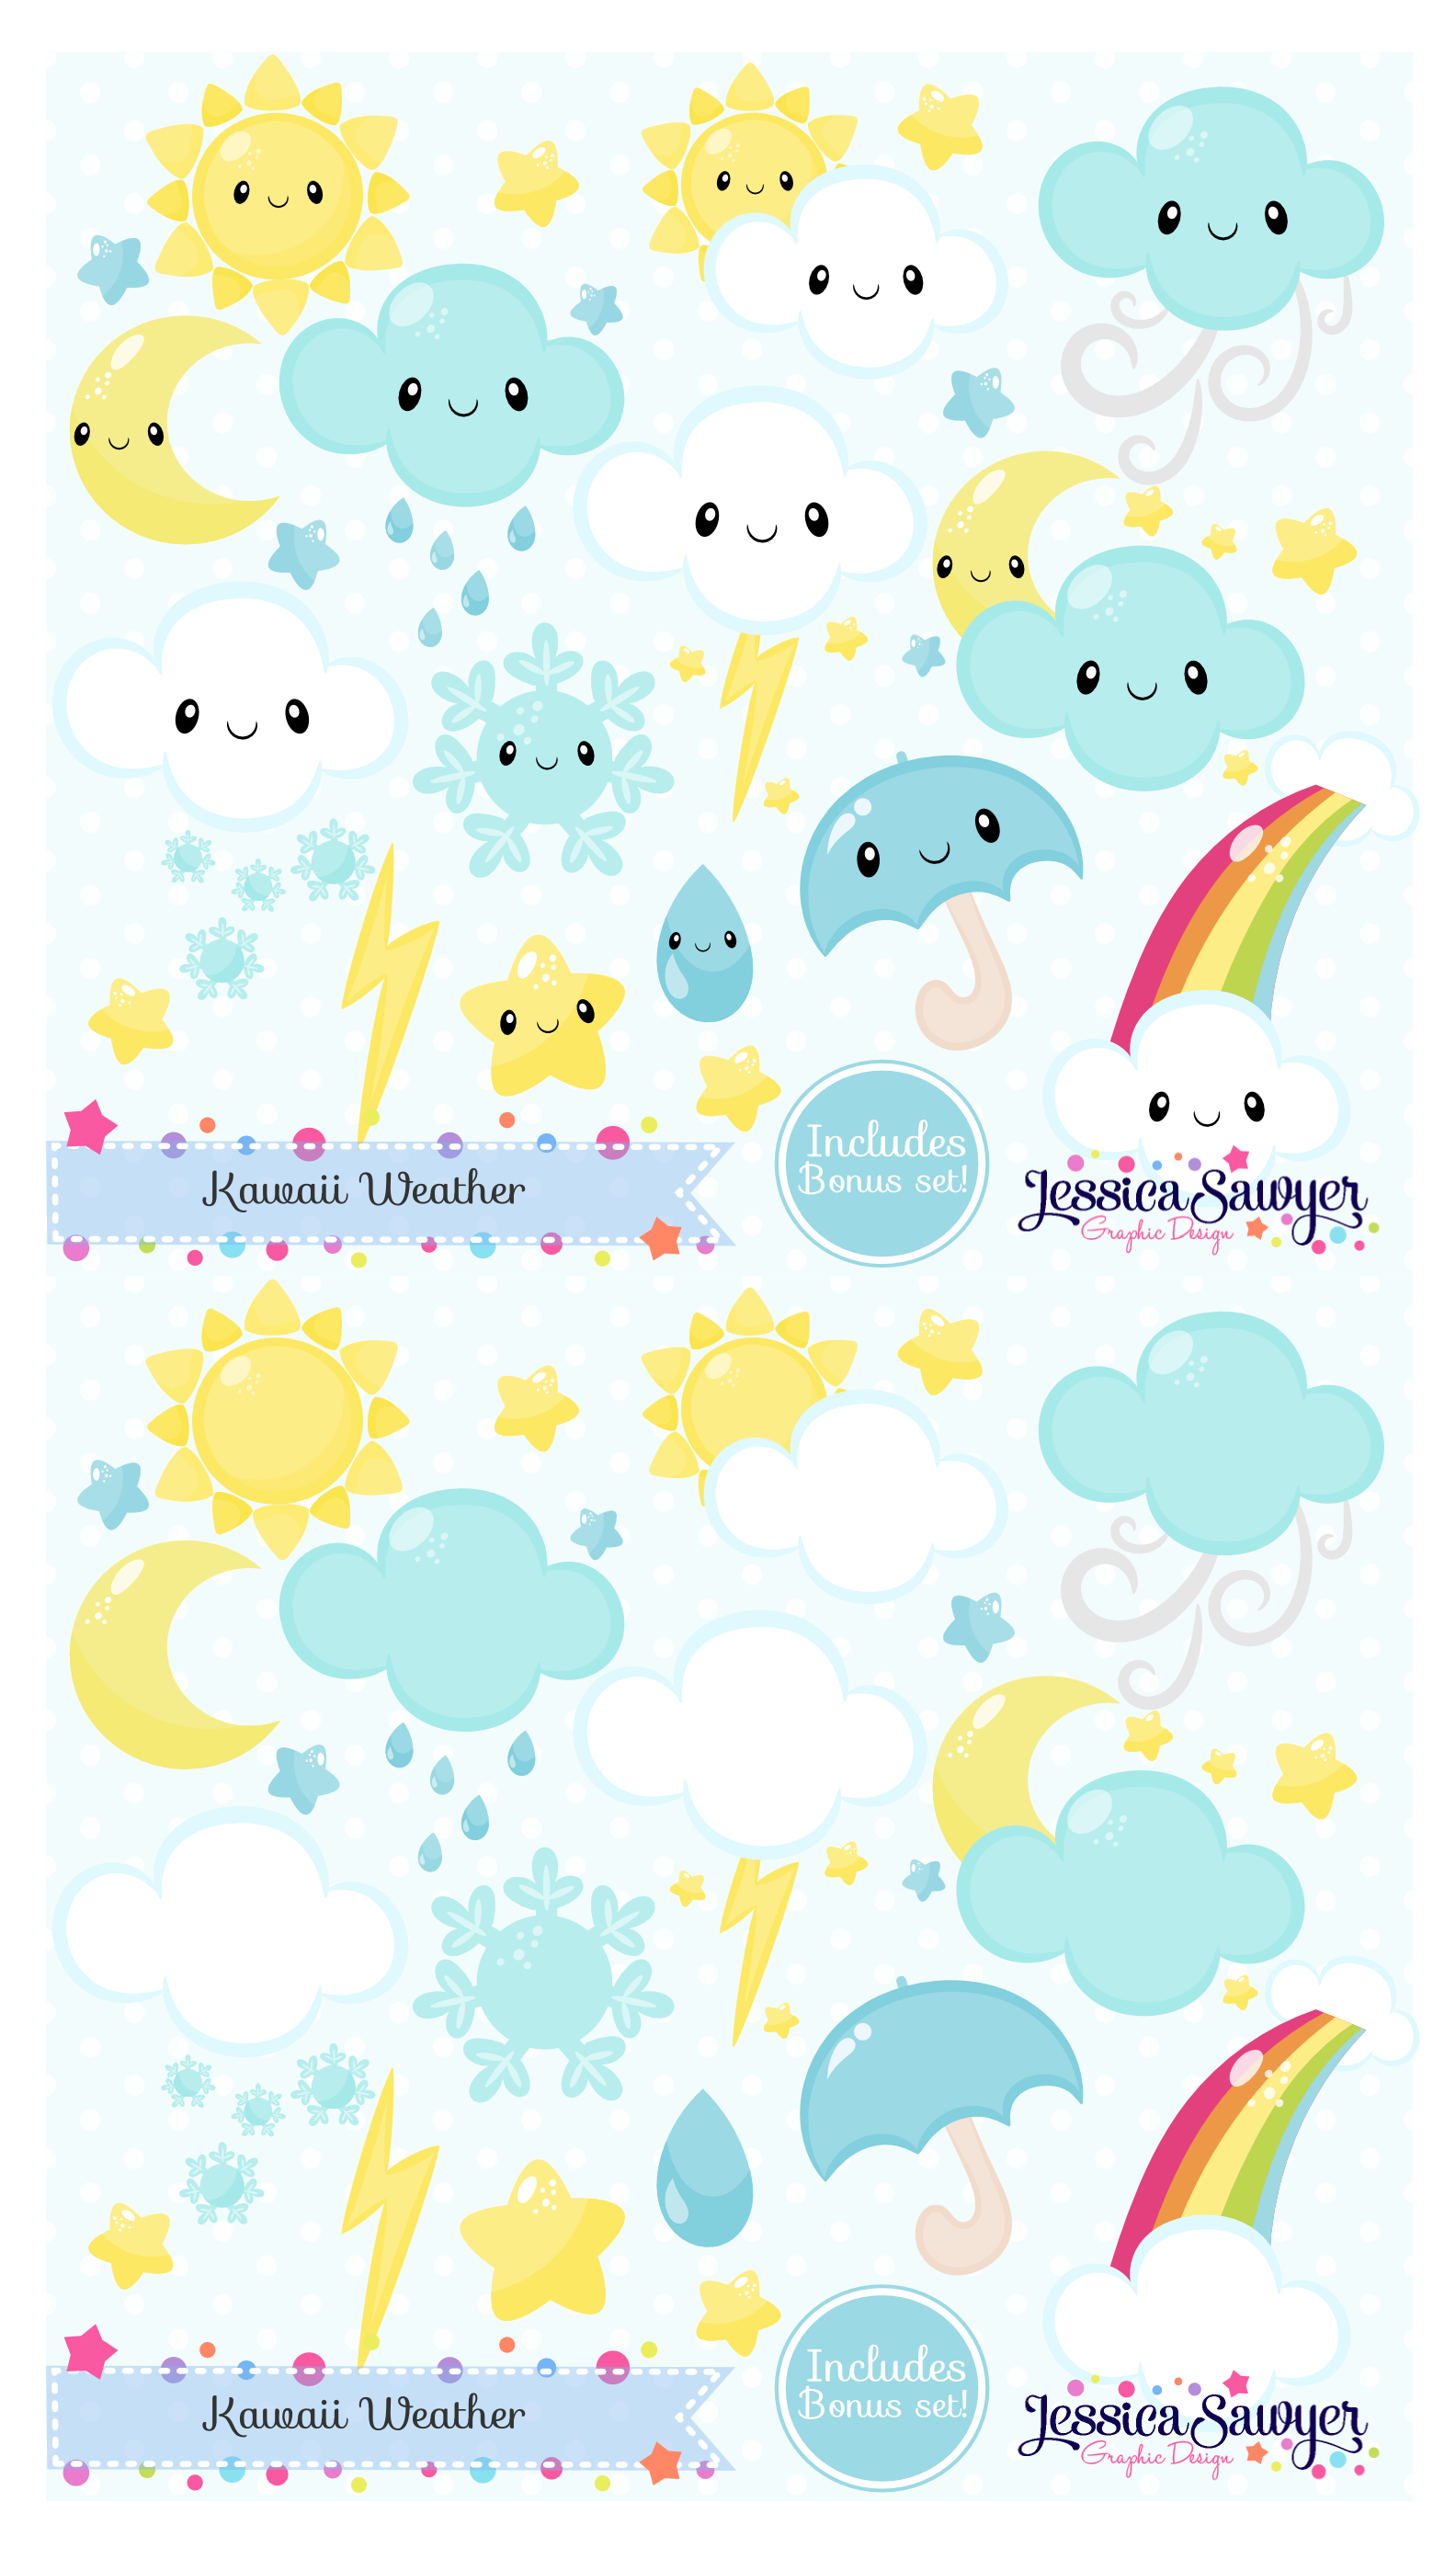 Kawaii Weather Clipart And Vectors For Planner Stickers, Products, And  Crafts